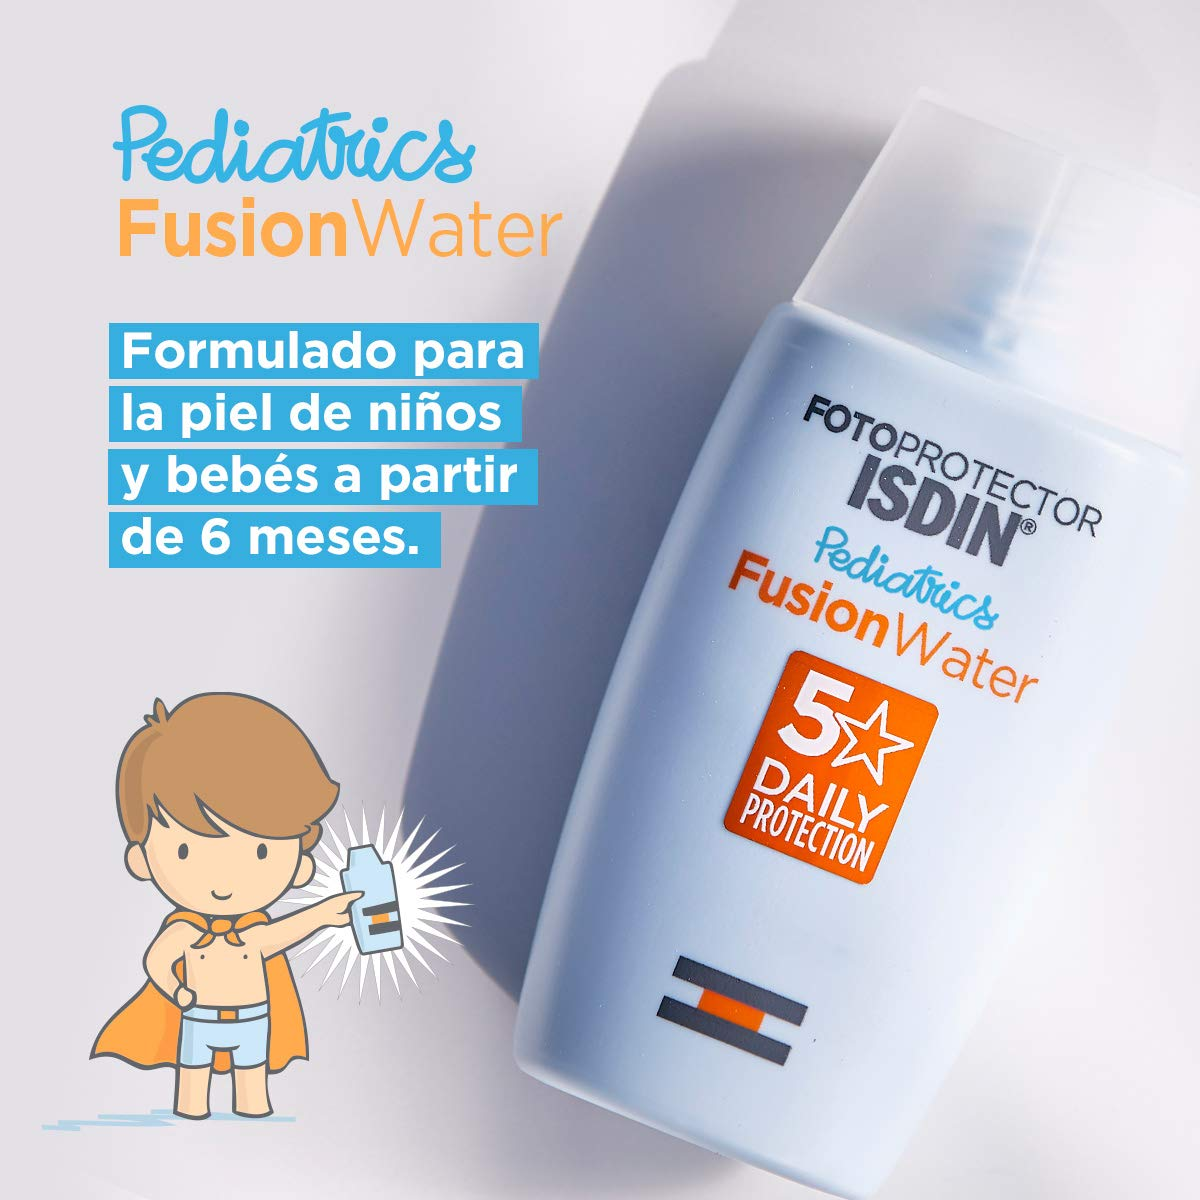 isdin-water-pediatrics-spf50.jpg